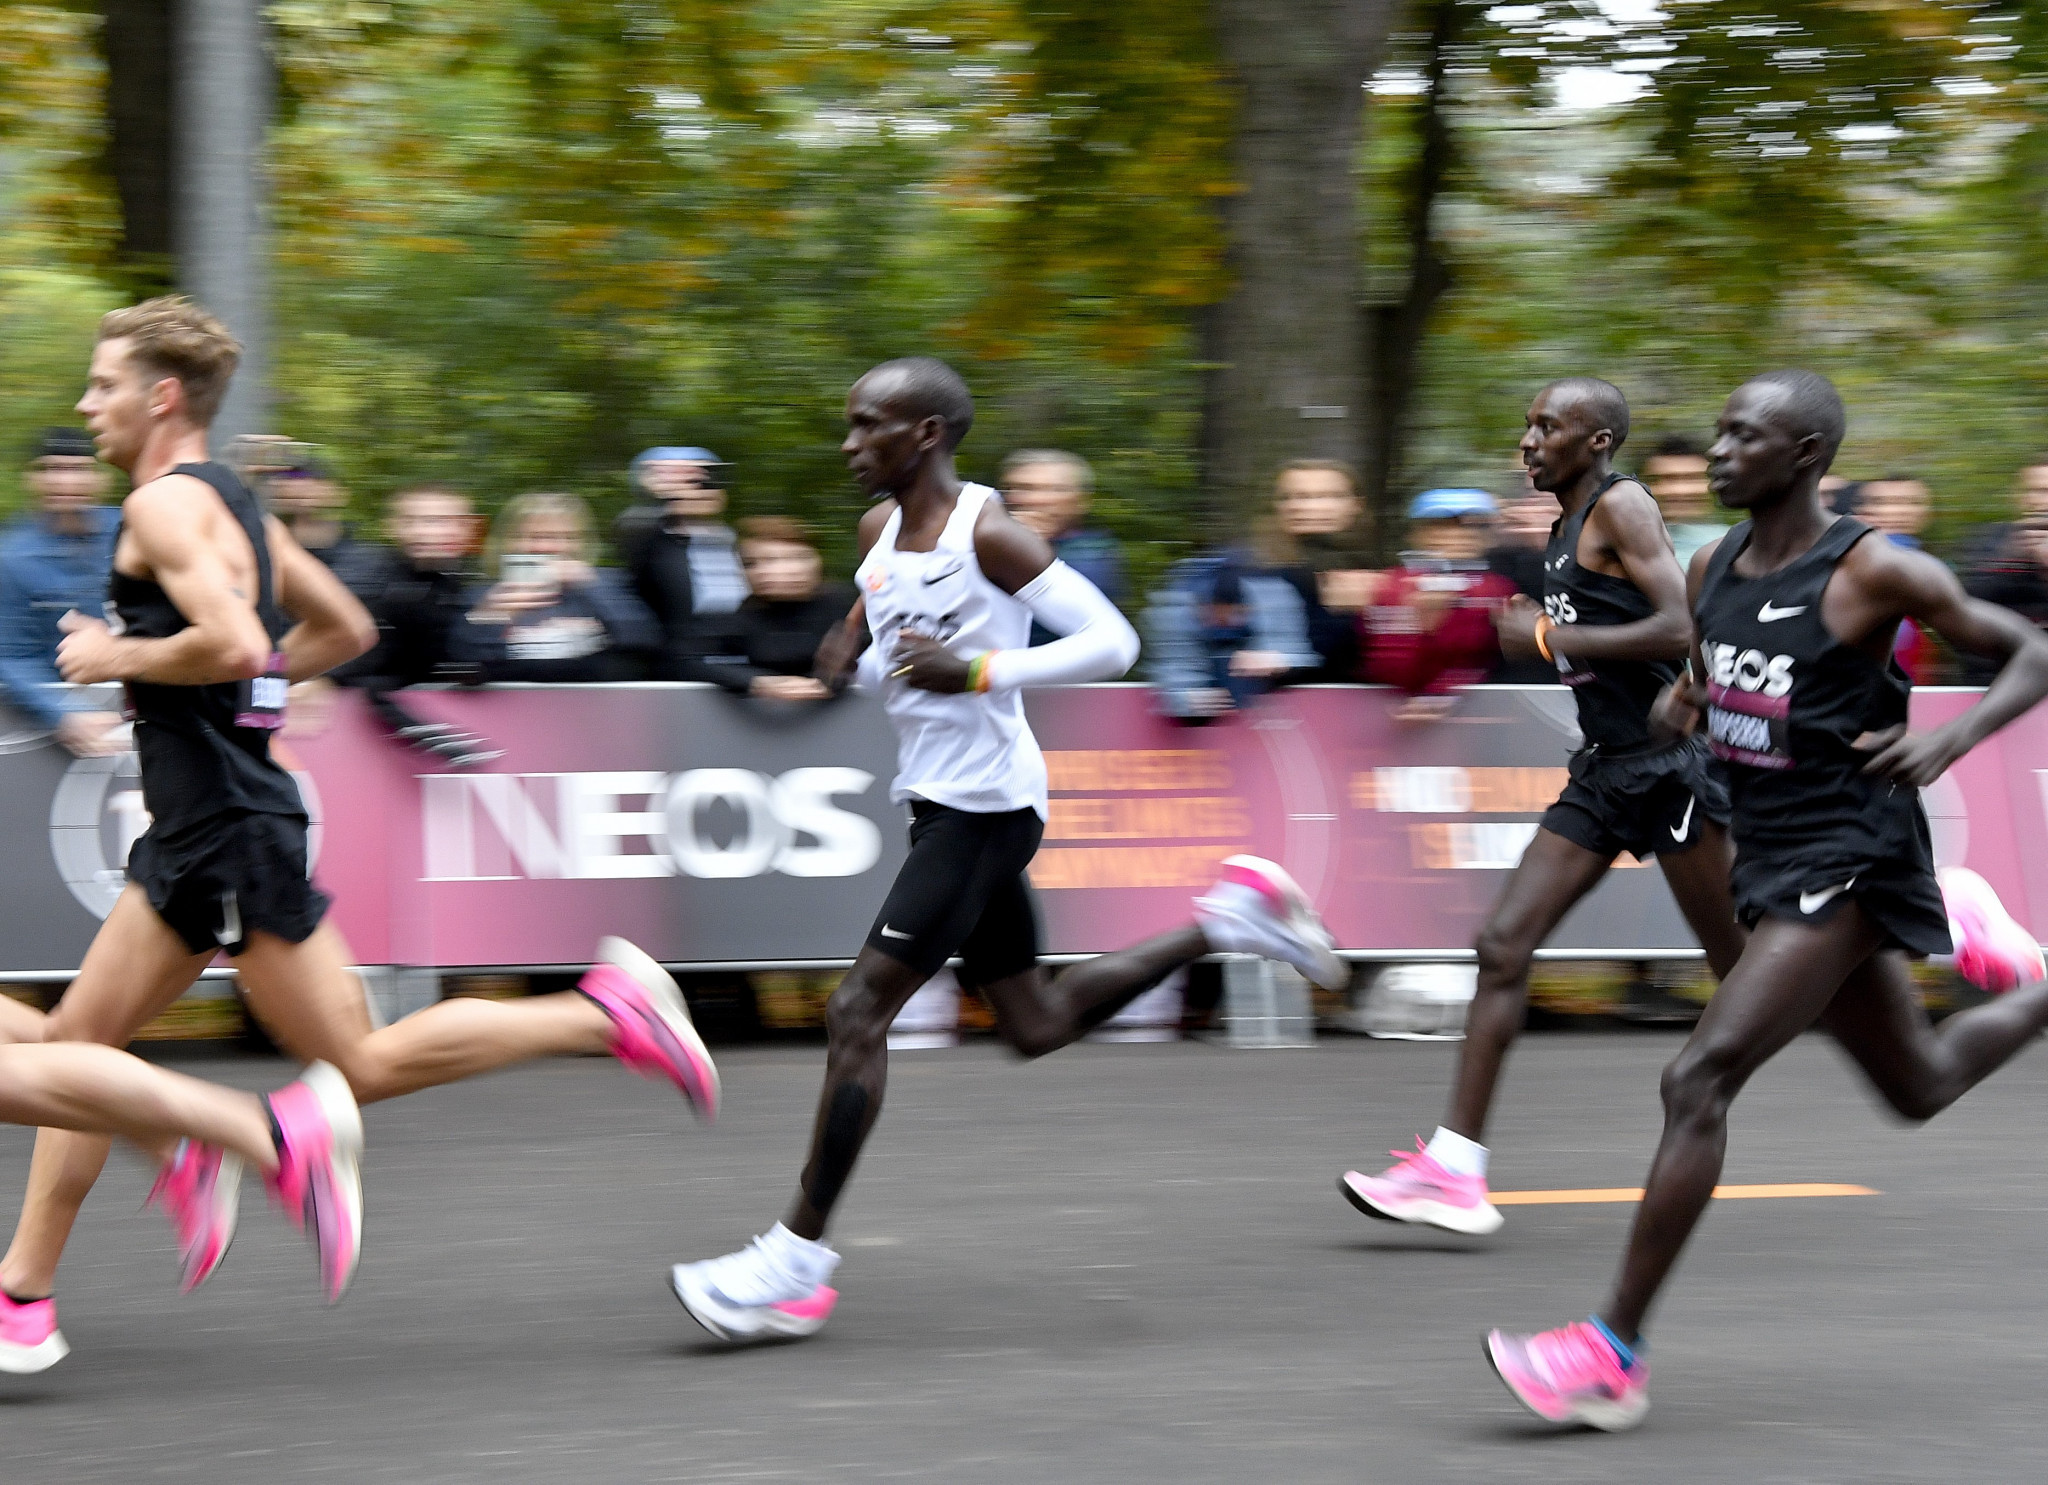 There was controversy over the shoes used by Kenya's Eliud Kipchoge when he became the first person to run a marathon in under two hours in Vienna last October ©Getty Images